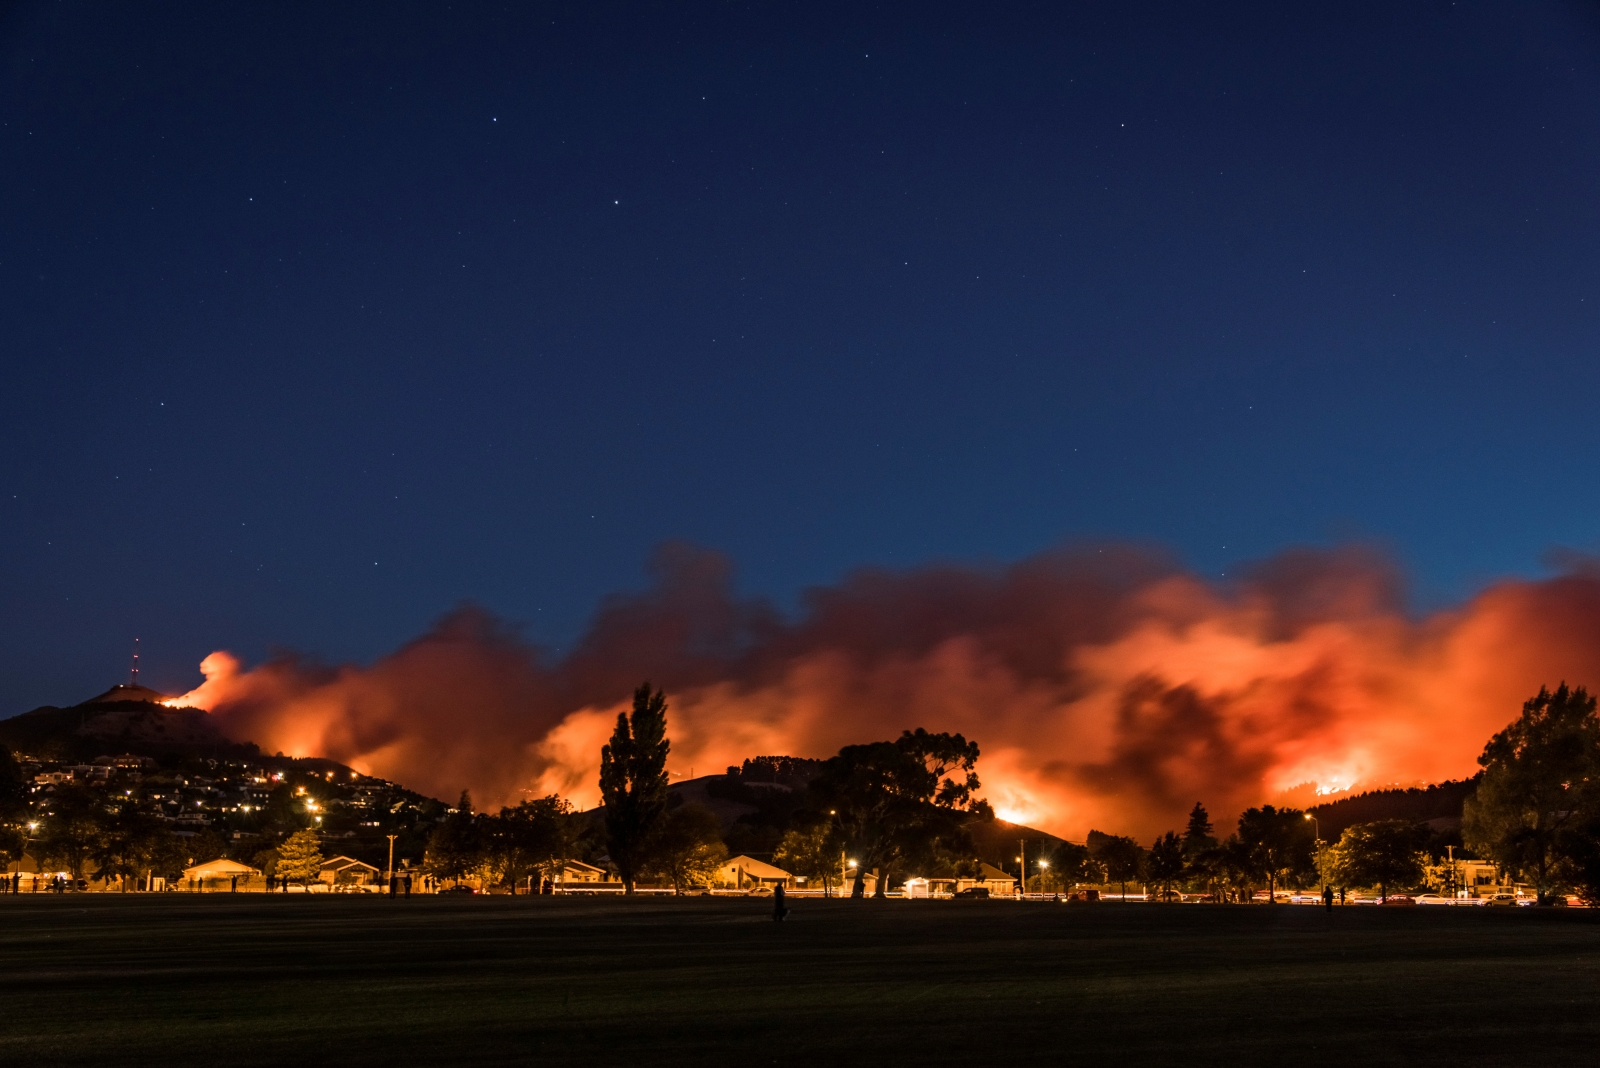 Firefighters battling wildfire in New Zealand city